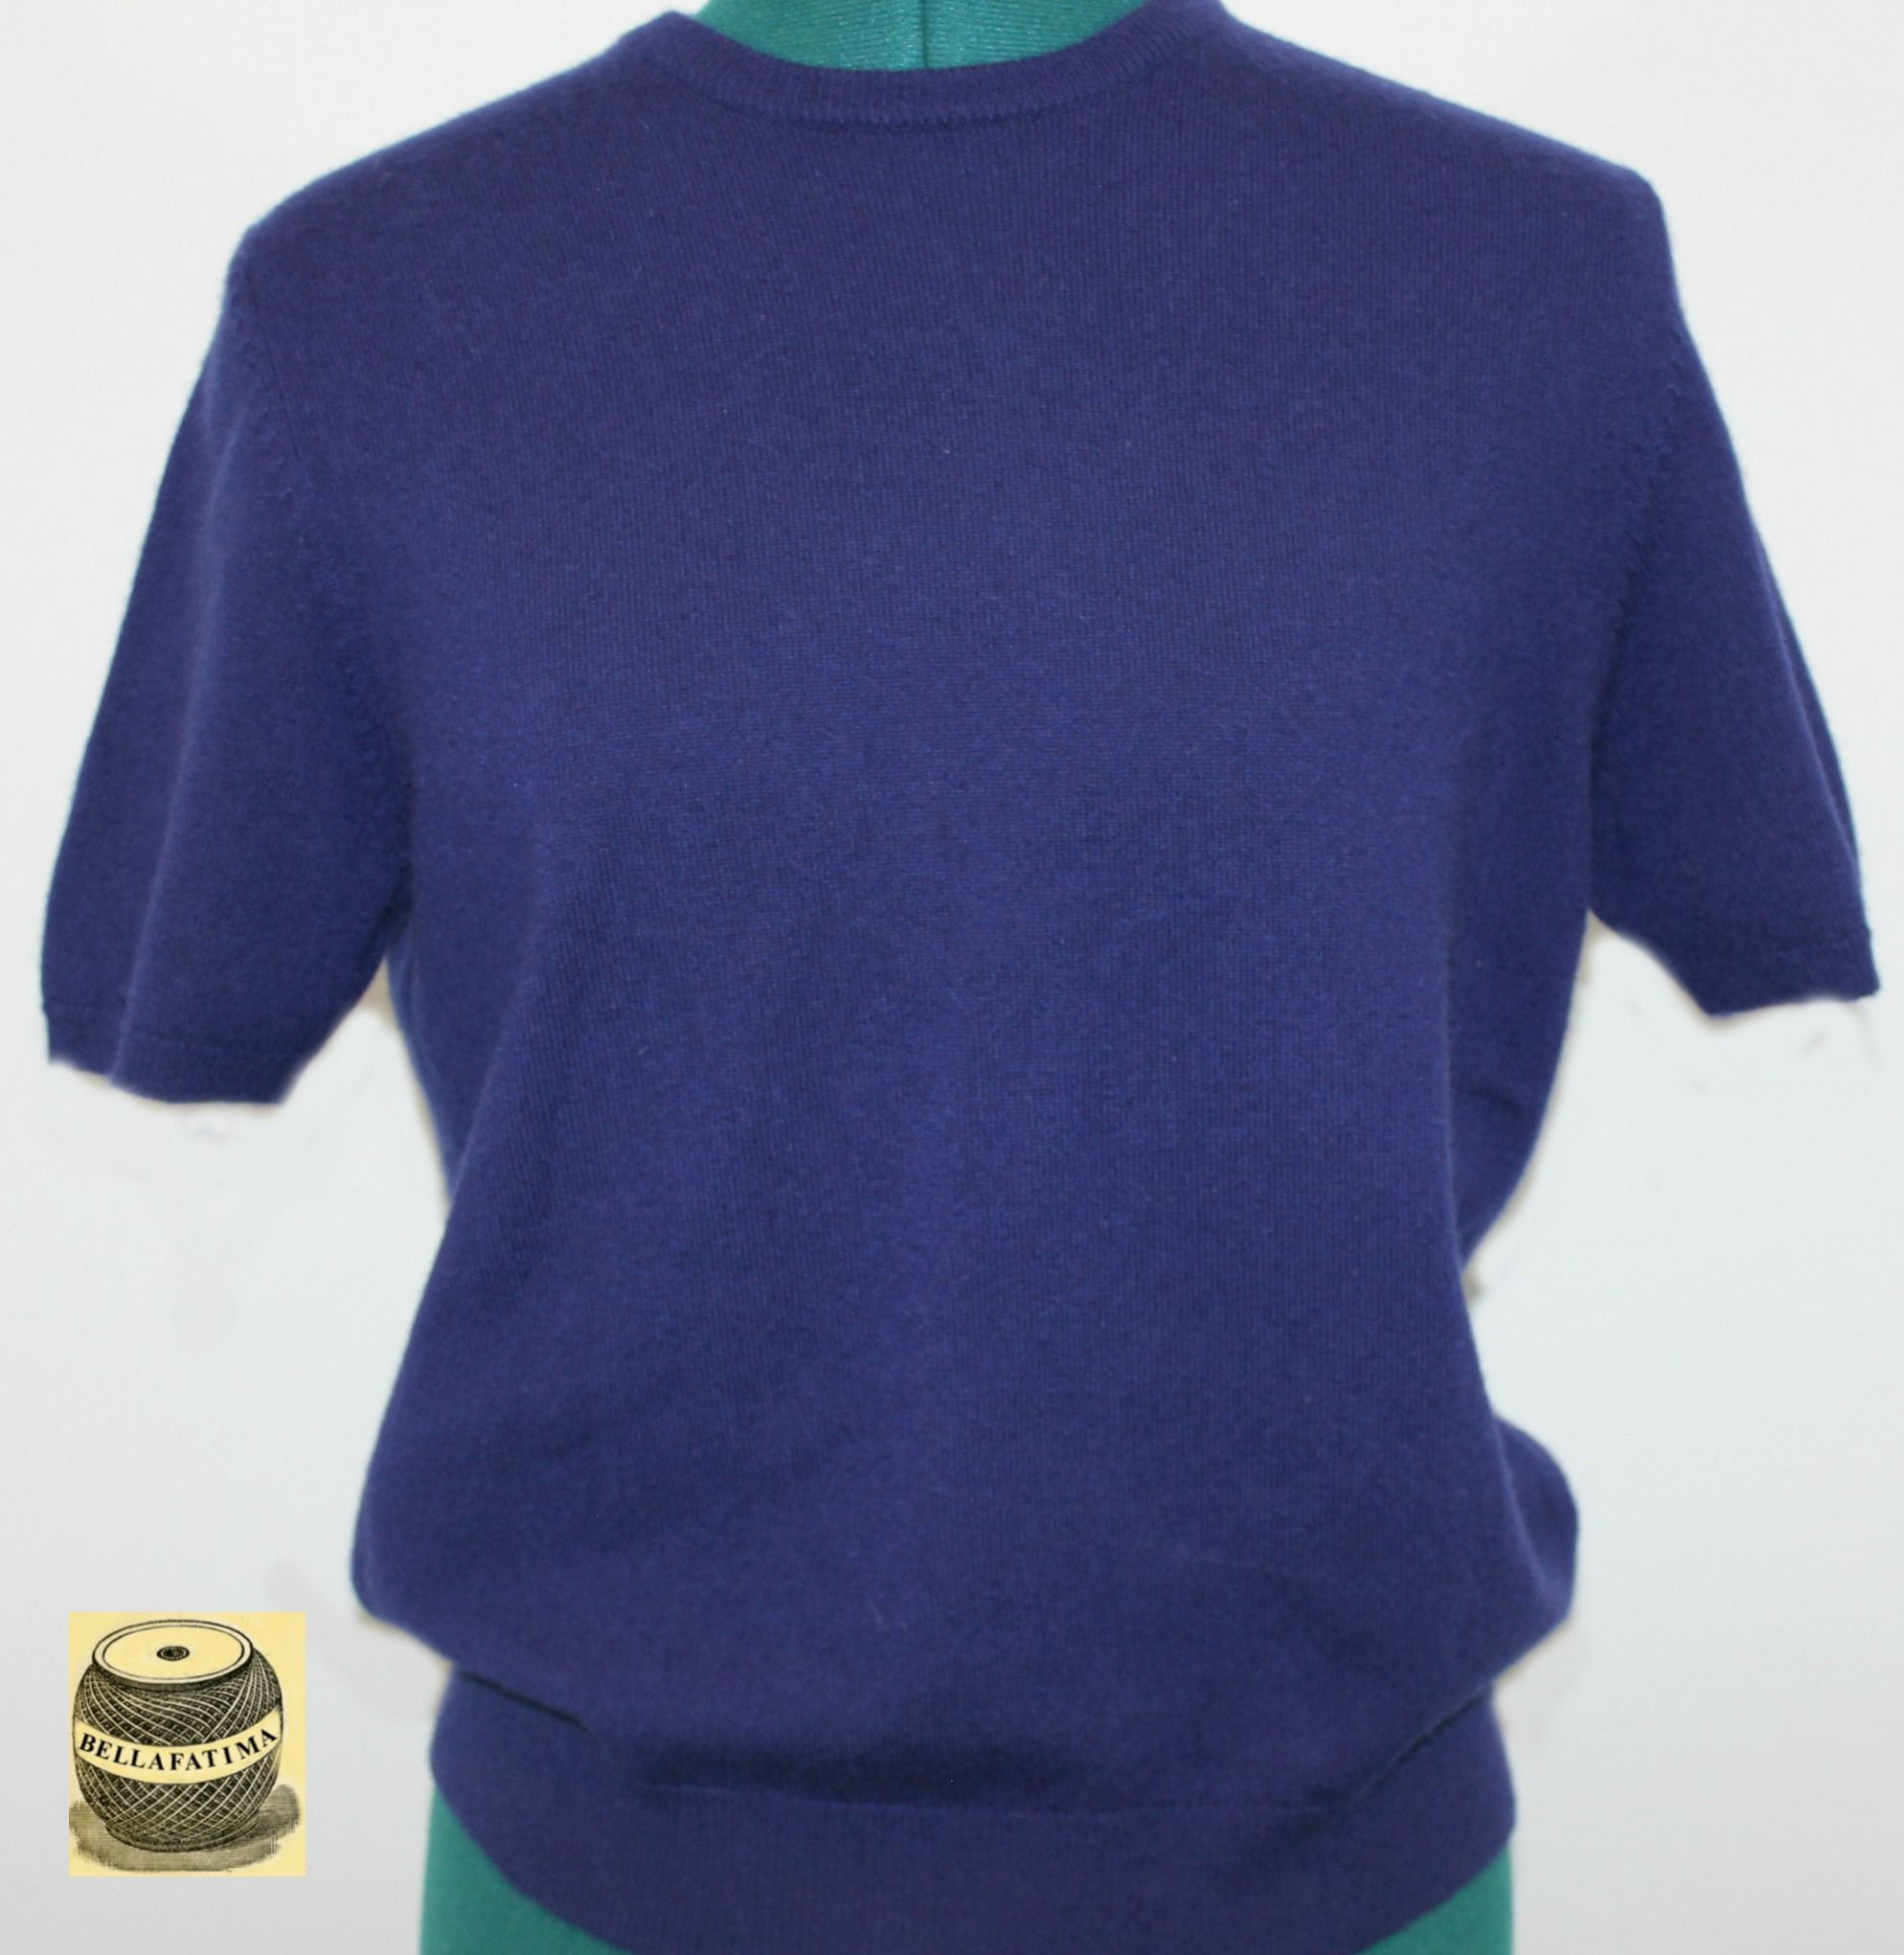 Navy Blue Short Sleeve Cashmere Sweater. By TSE. $27.00 | A ...